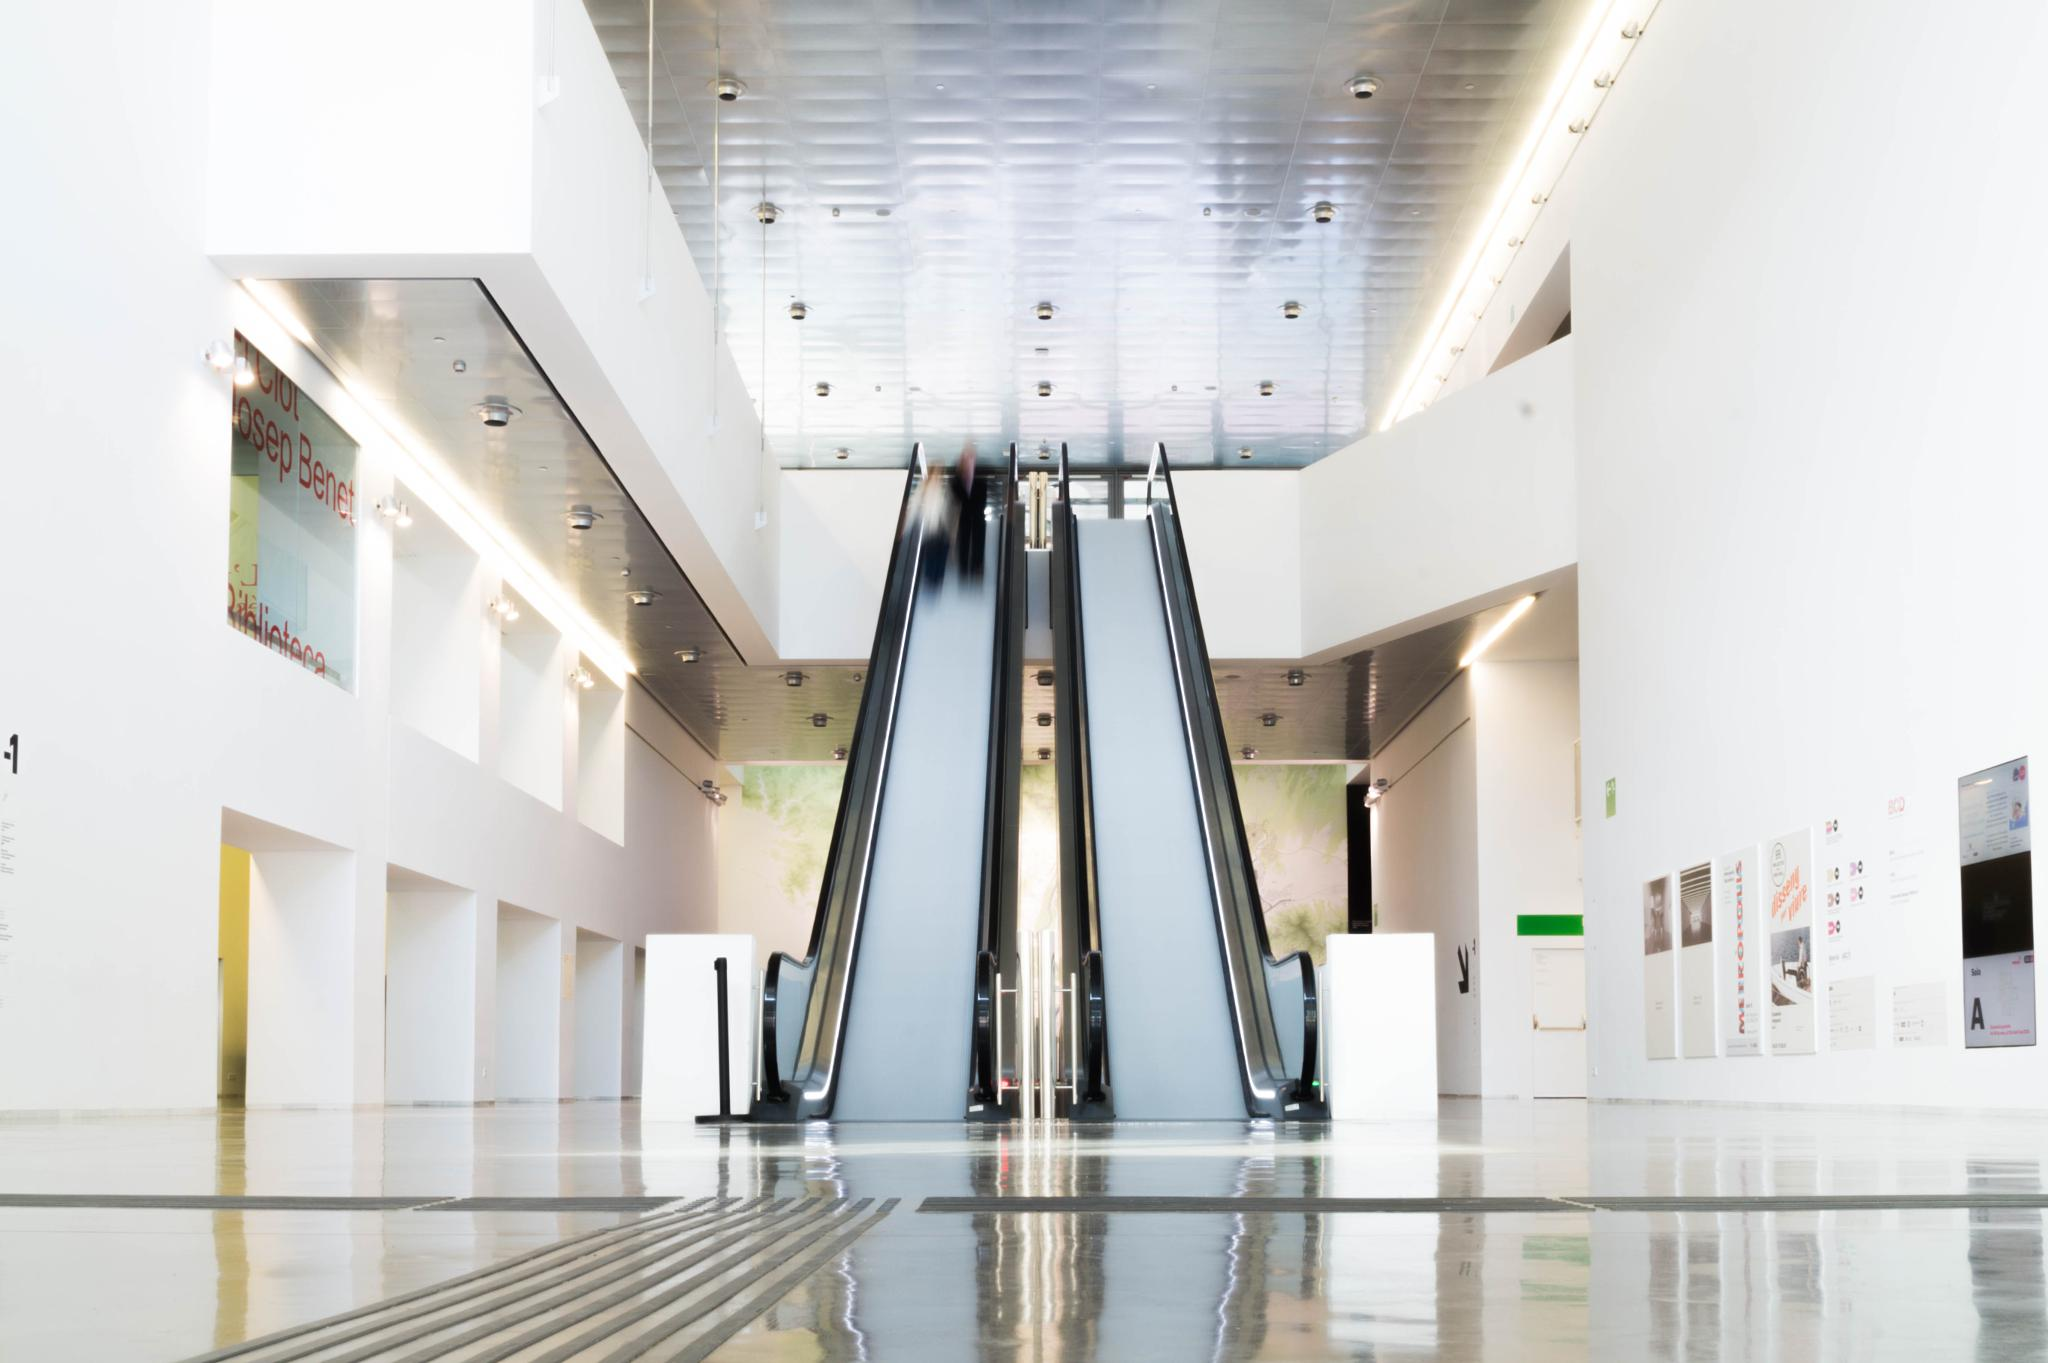 Escalator by RD Photography